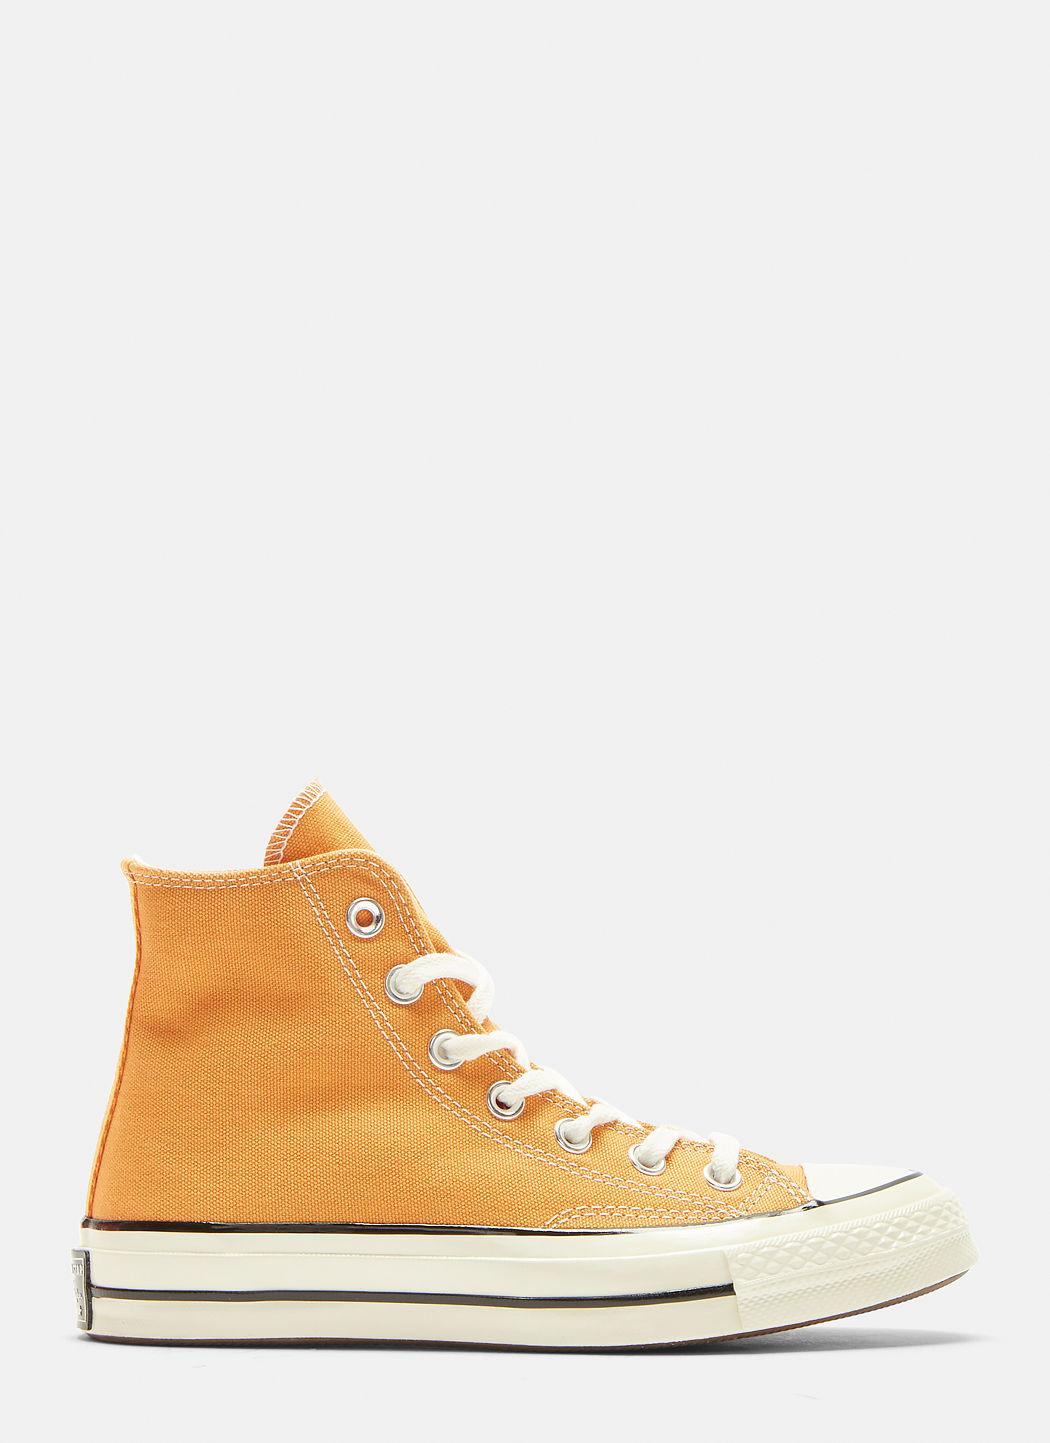 Converse High Chuck Taylor 1970S All Star Sneakers In Orange